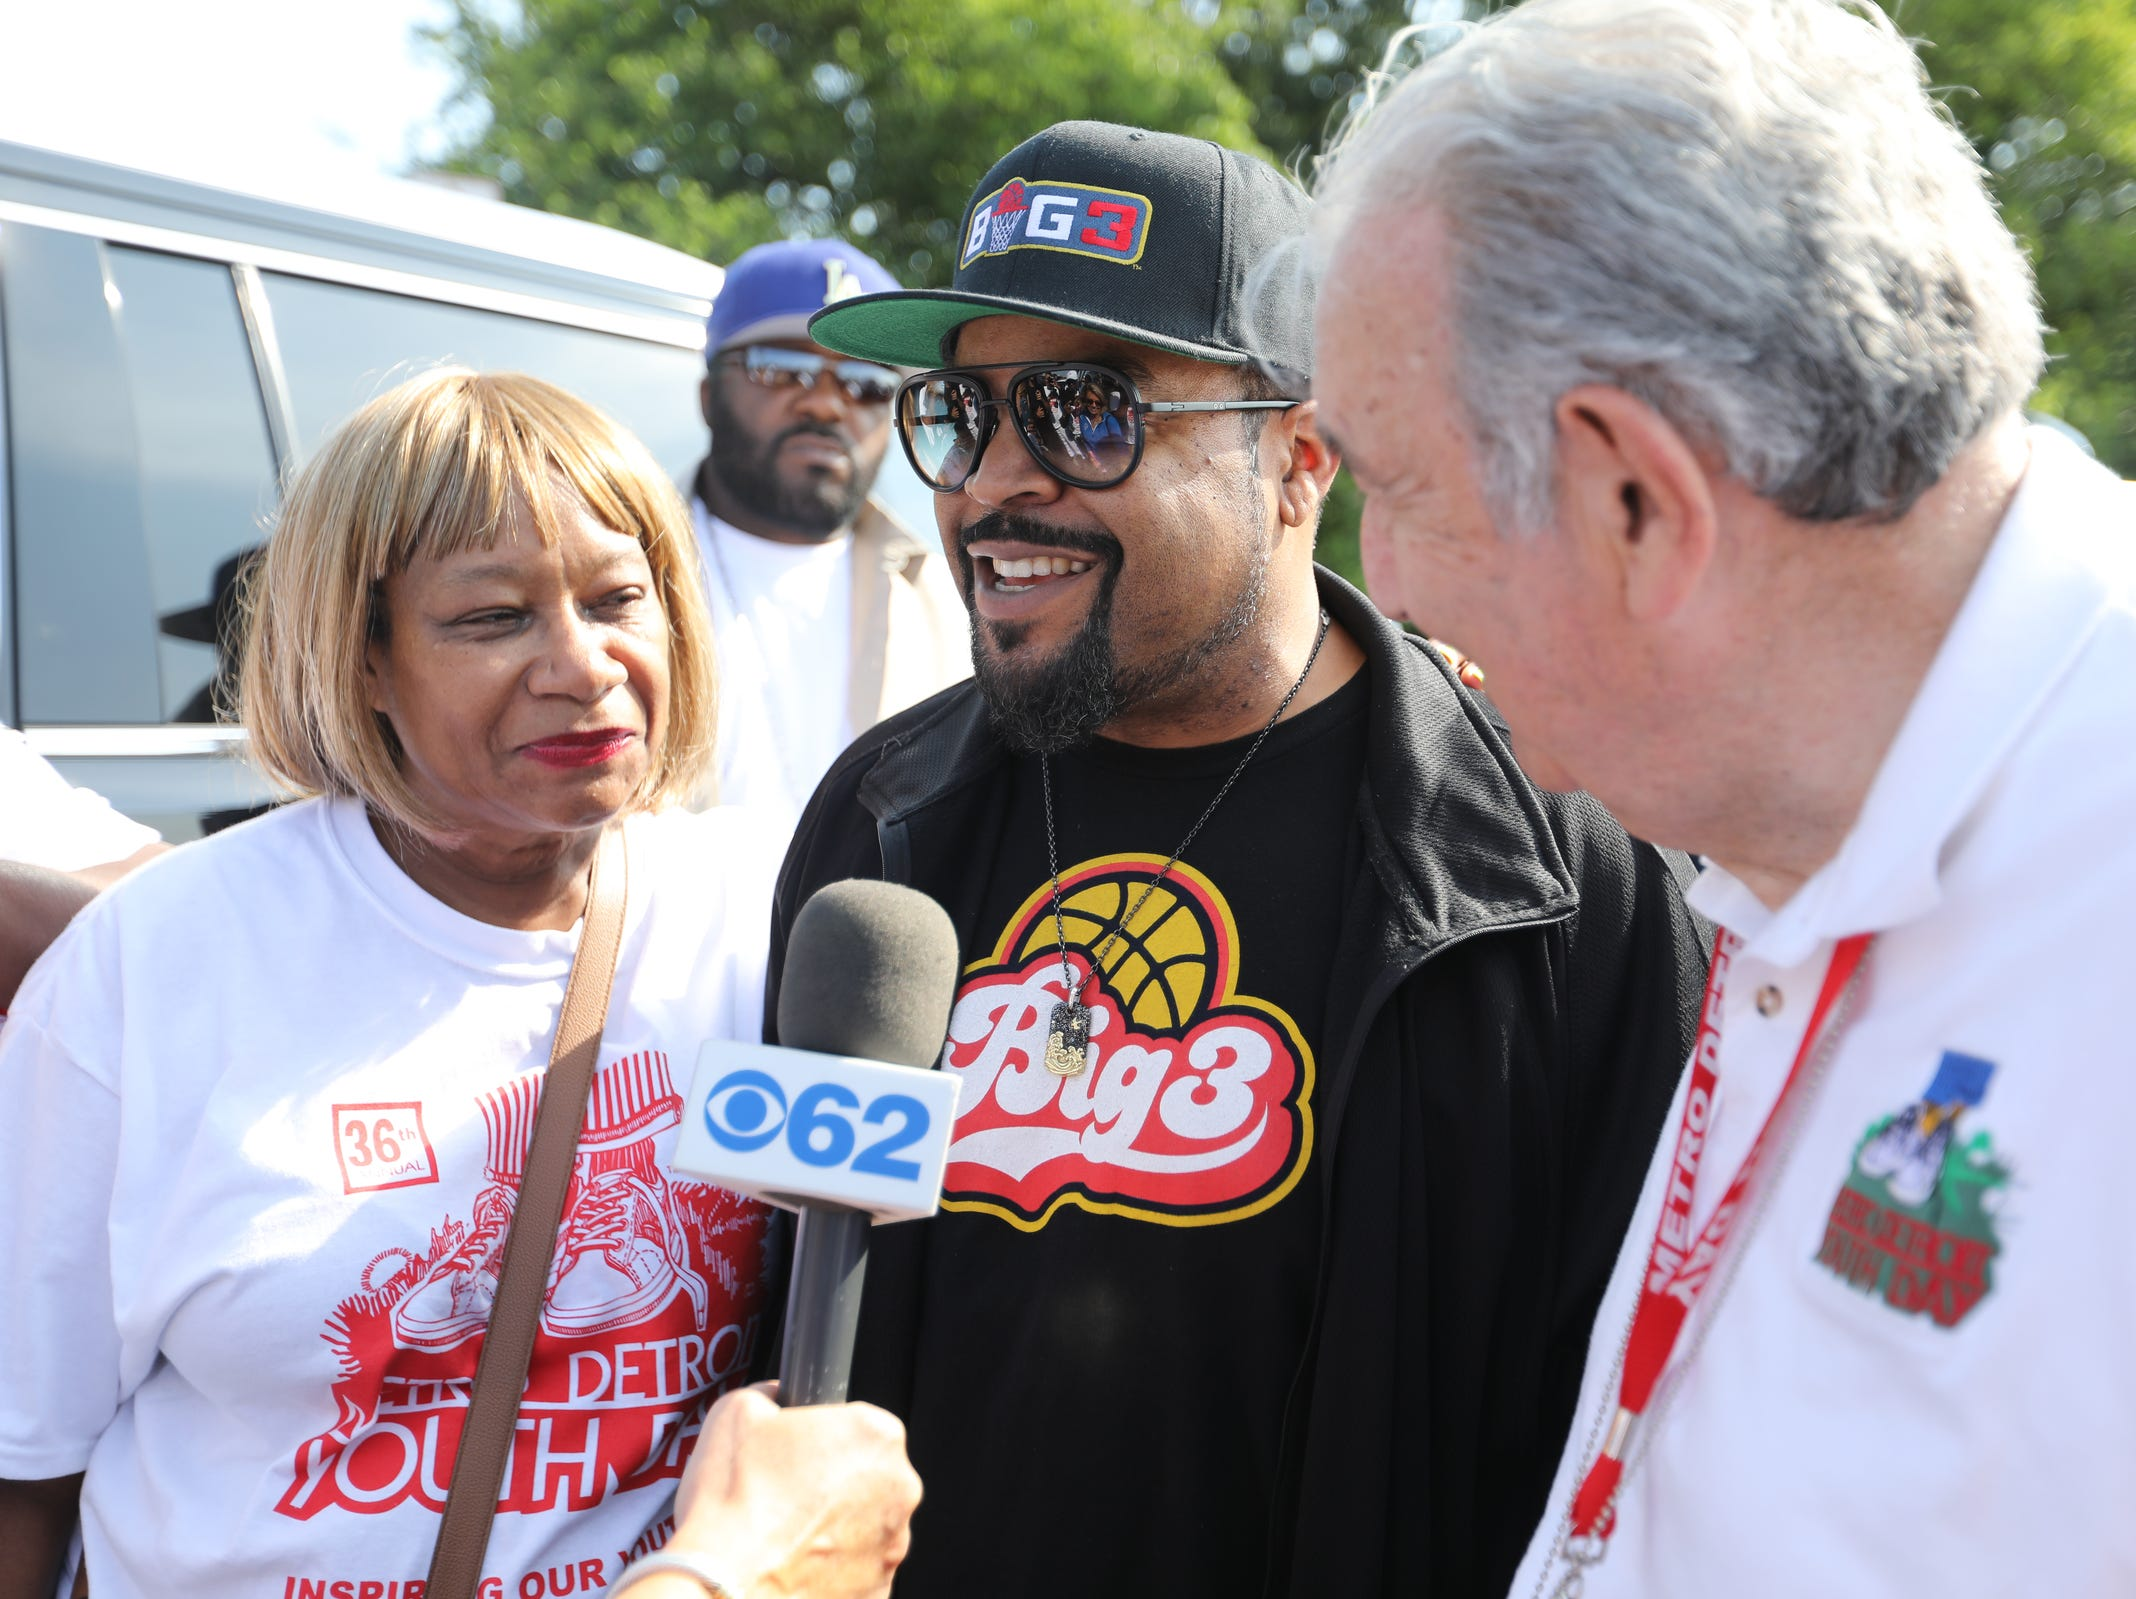 Entertainer Ice Cube speaks to the press alongside board members Barbara Jean Johnson, left, and Edward Deeb, right, during Metro Detroit Youth Day at Belle Isle in Detroit on Wednesday, July 11, 2018.